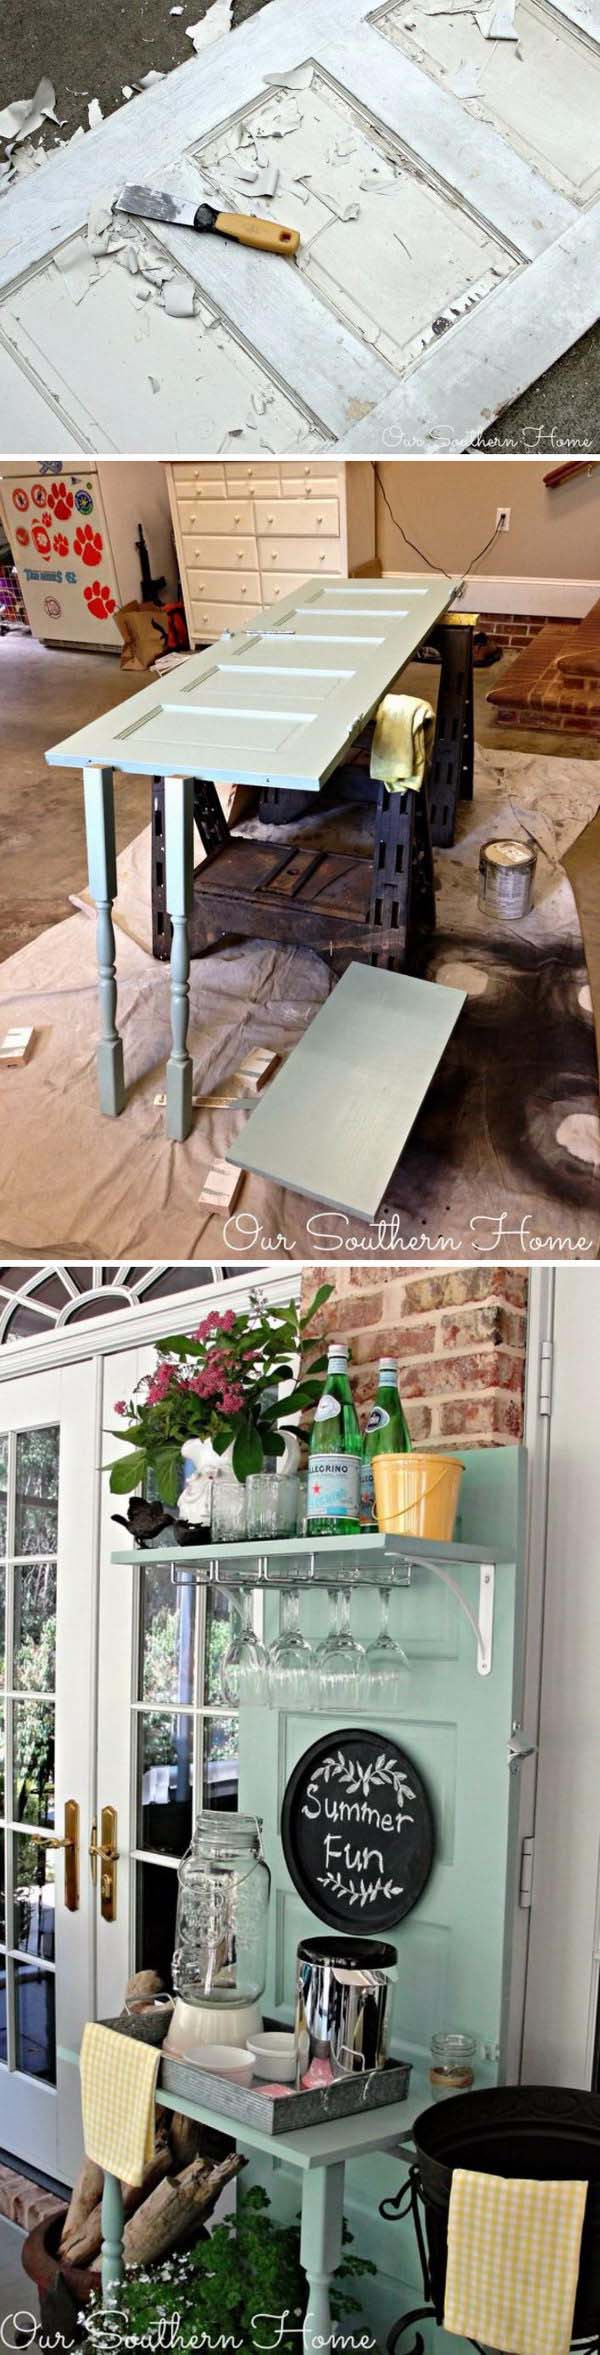 Old Thrift Door To Beverage Station #furniture #makeover #diy #decorhomeideas